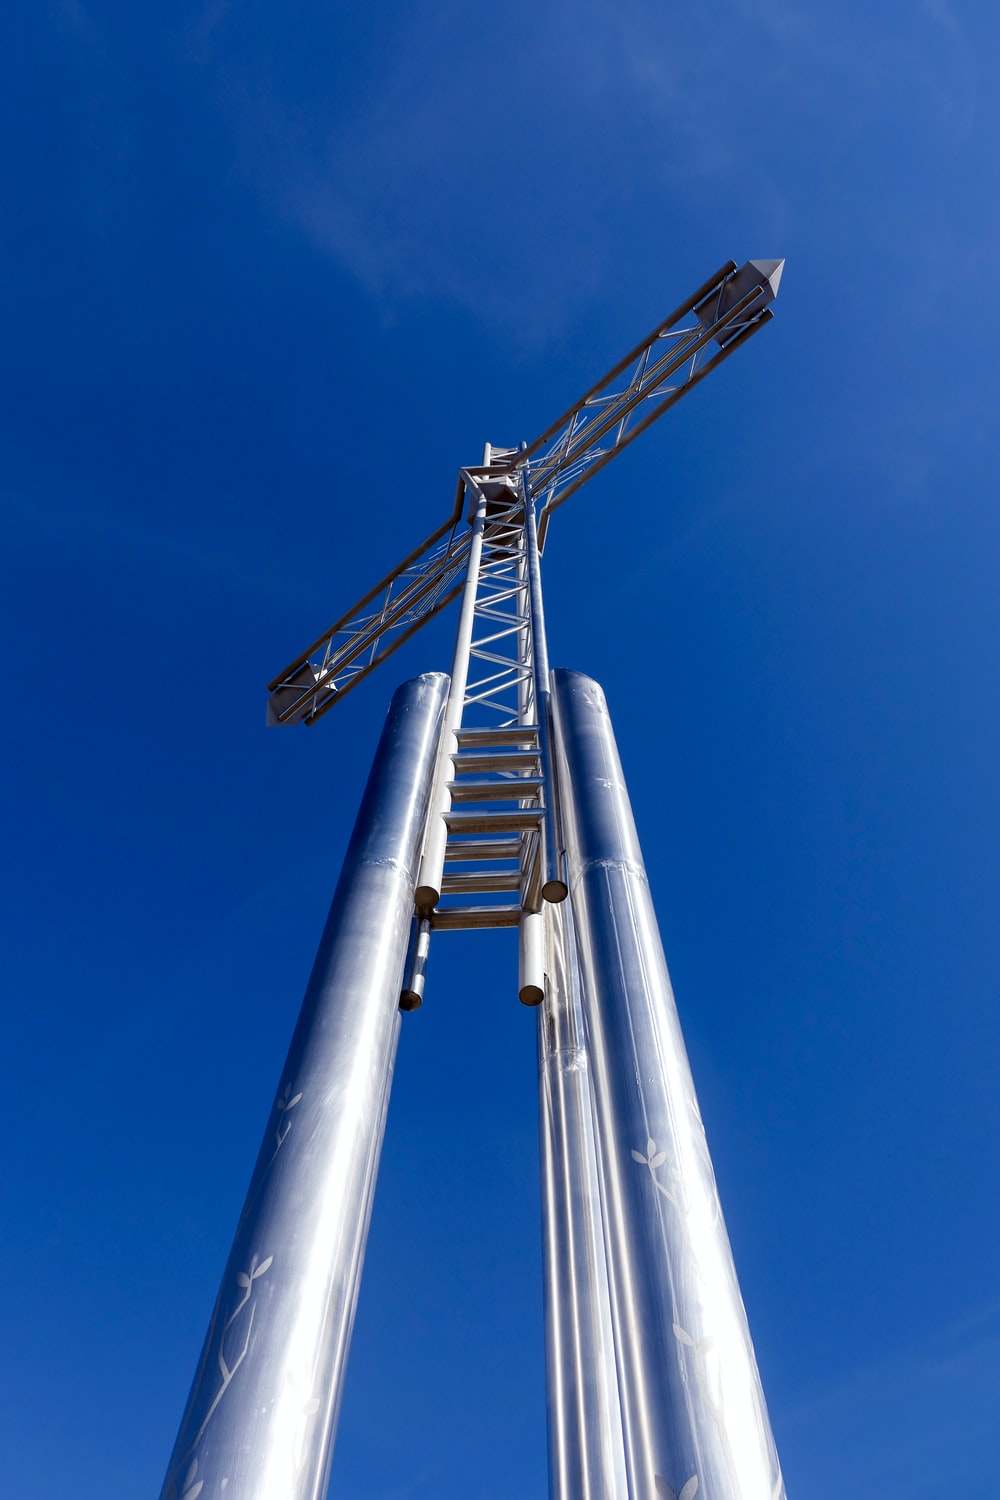 gray metal tower under blue sky during daytime